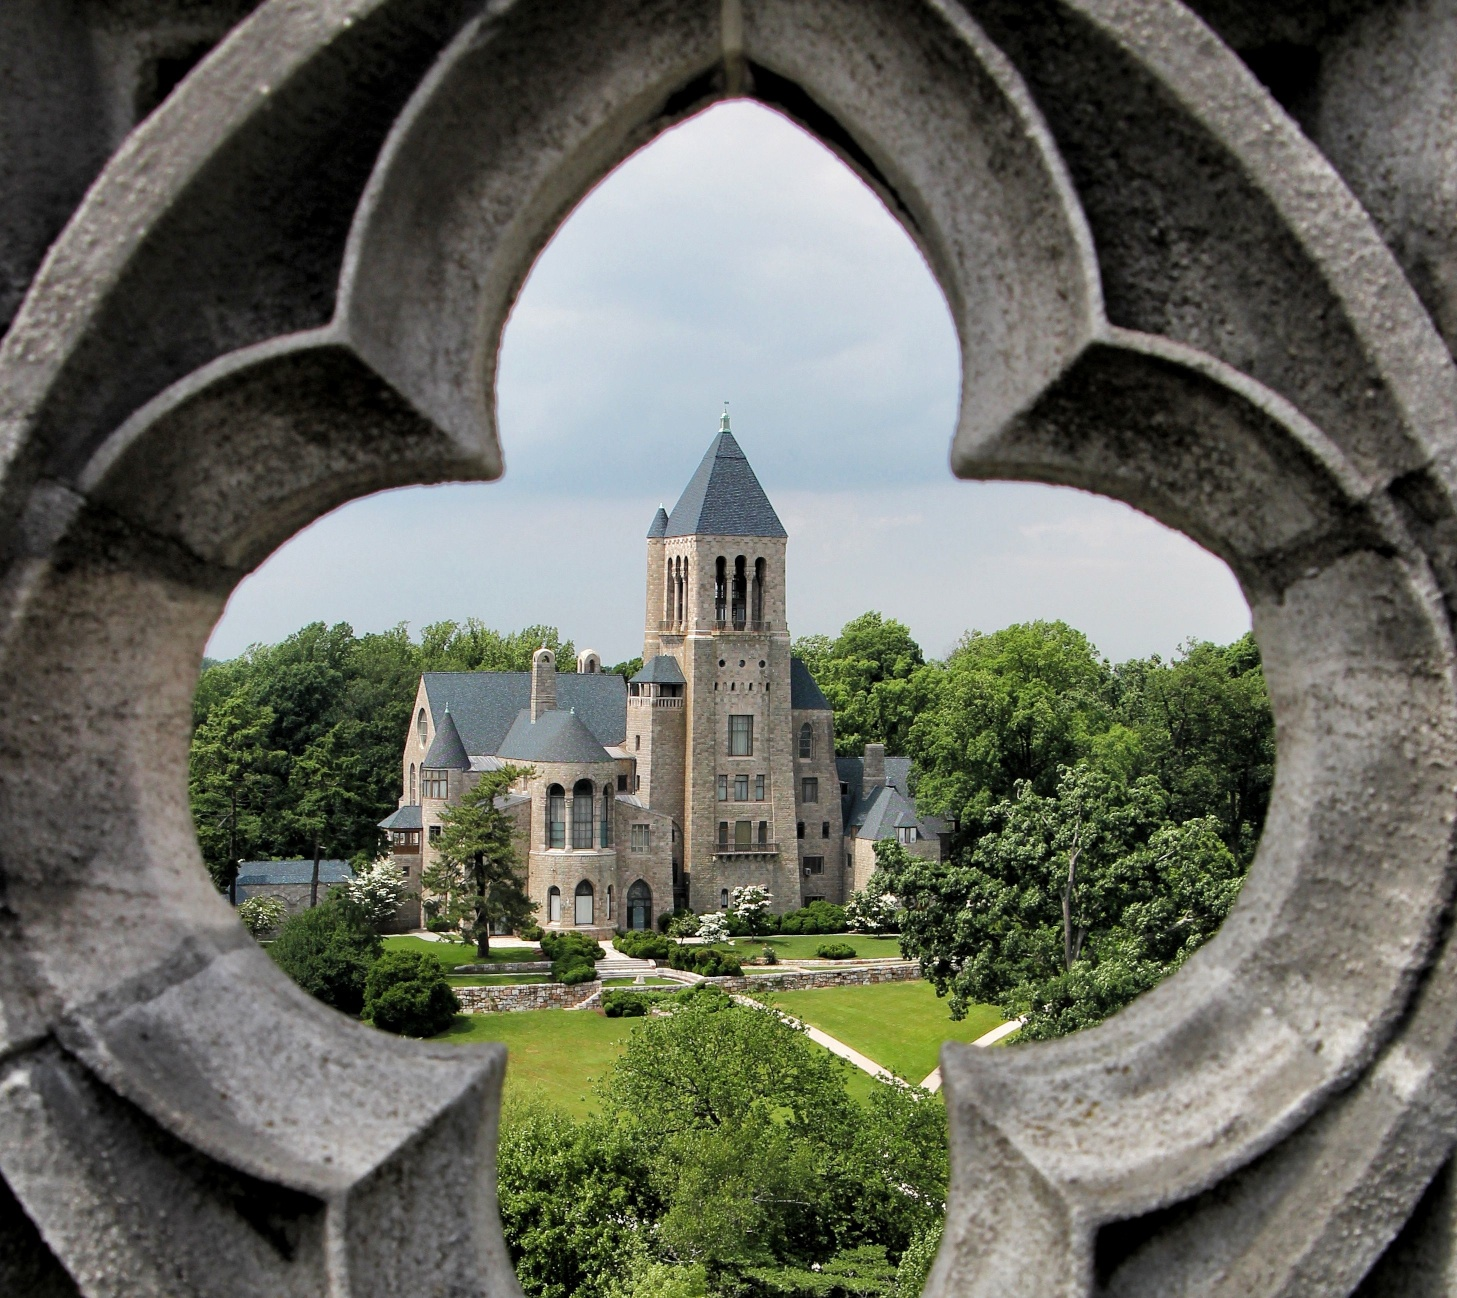 Glencairn viewed through one of the quatrefoils at the top of Bryn Athyn Cathedral.